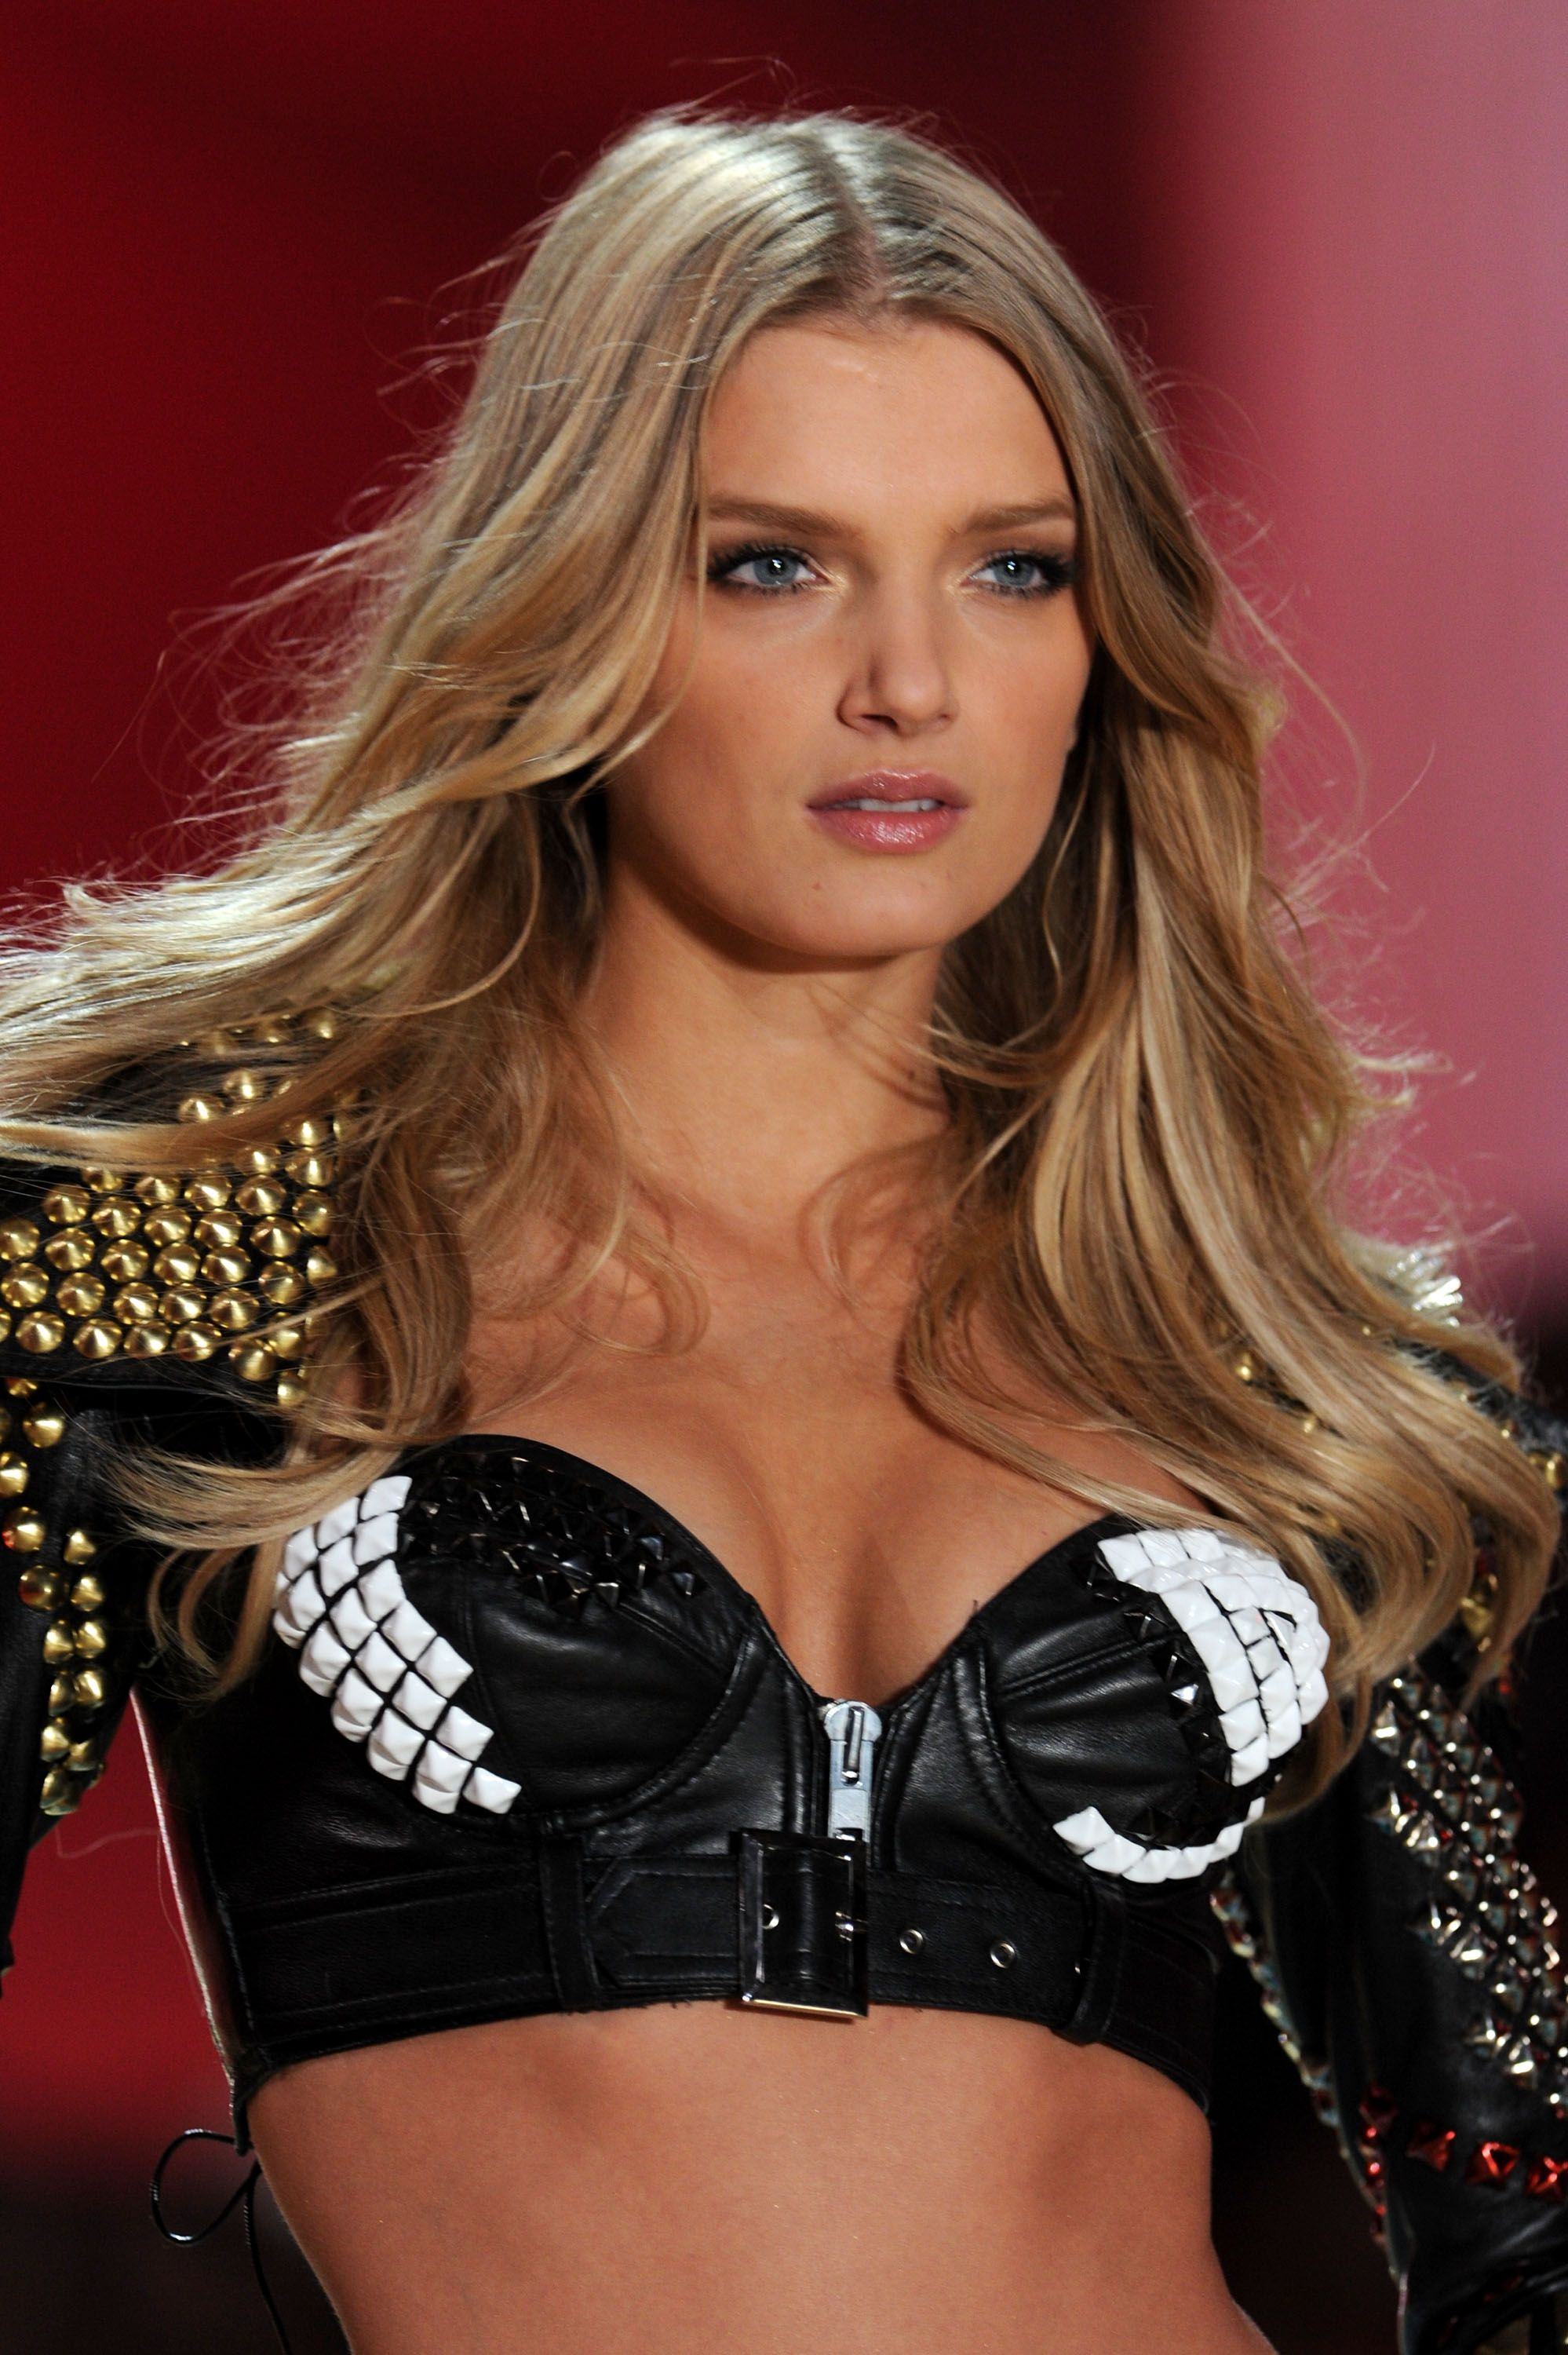 lily donaldson weight and height